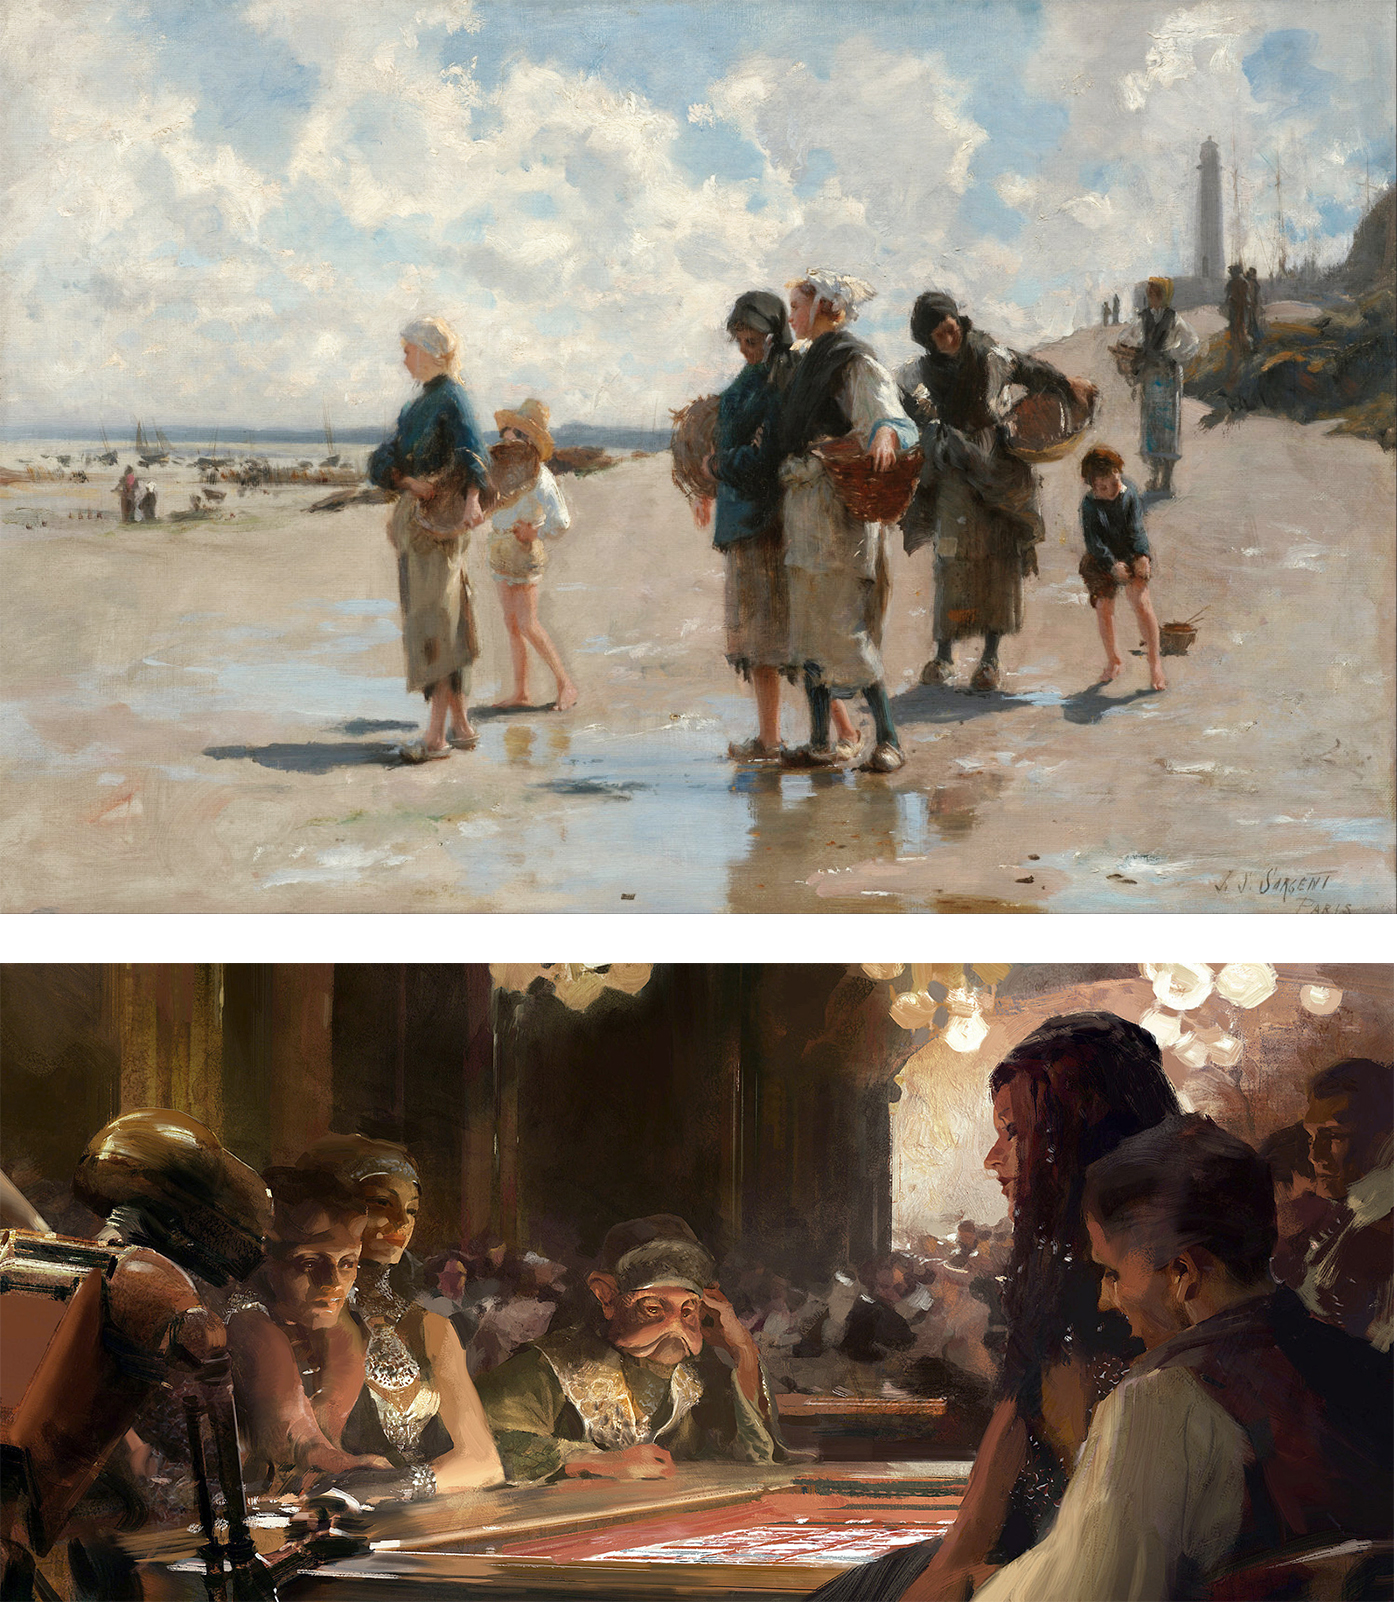 'The Oyster Gatherers of Cancale', by John Singer Sargent and a conceptual art image created by Jaime Jones for the film Star Wars: Episode VIII – The Last Jedi.I recently met Jaime Jones, a digital artist working in the film and video game industry